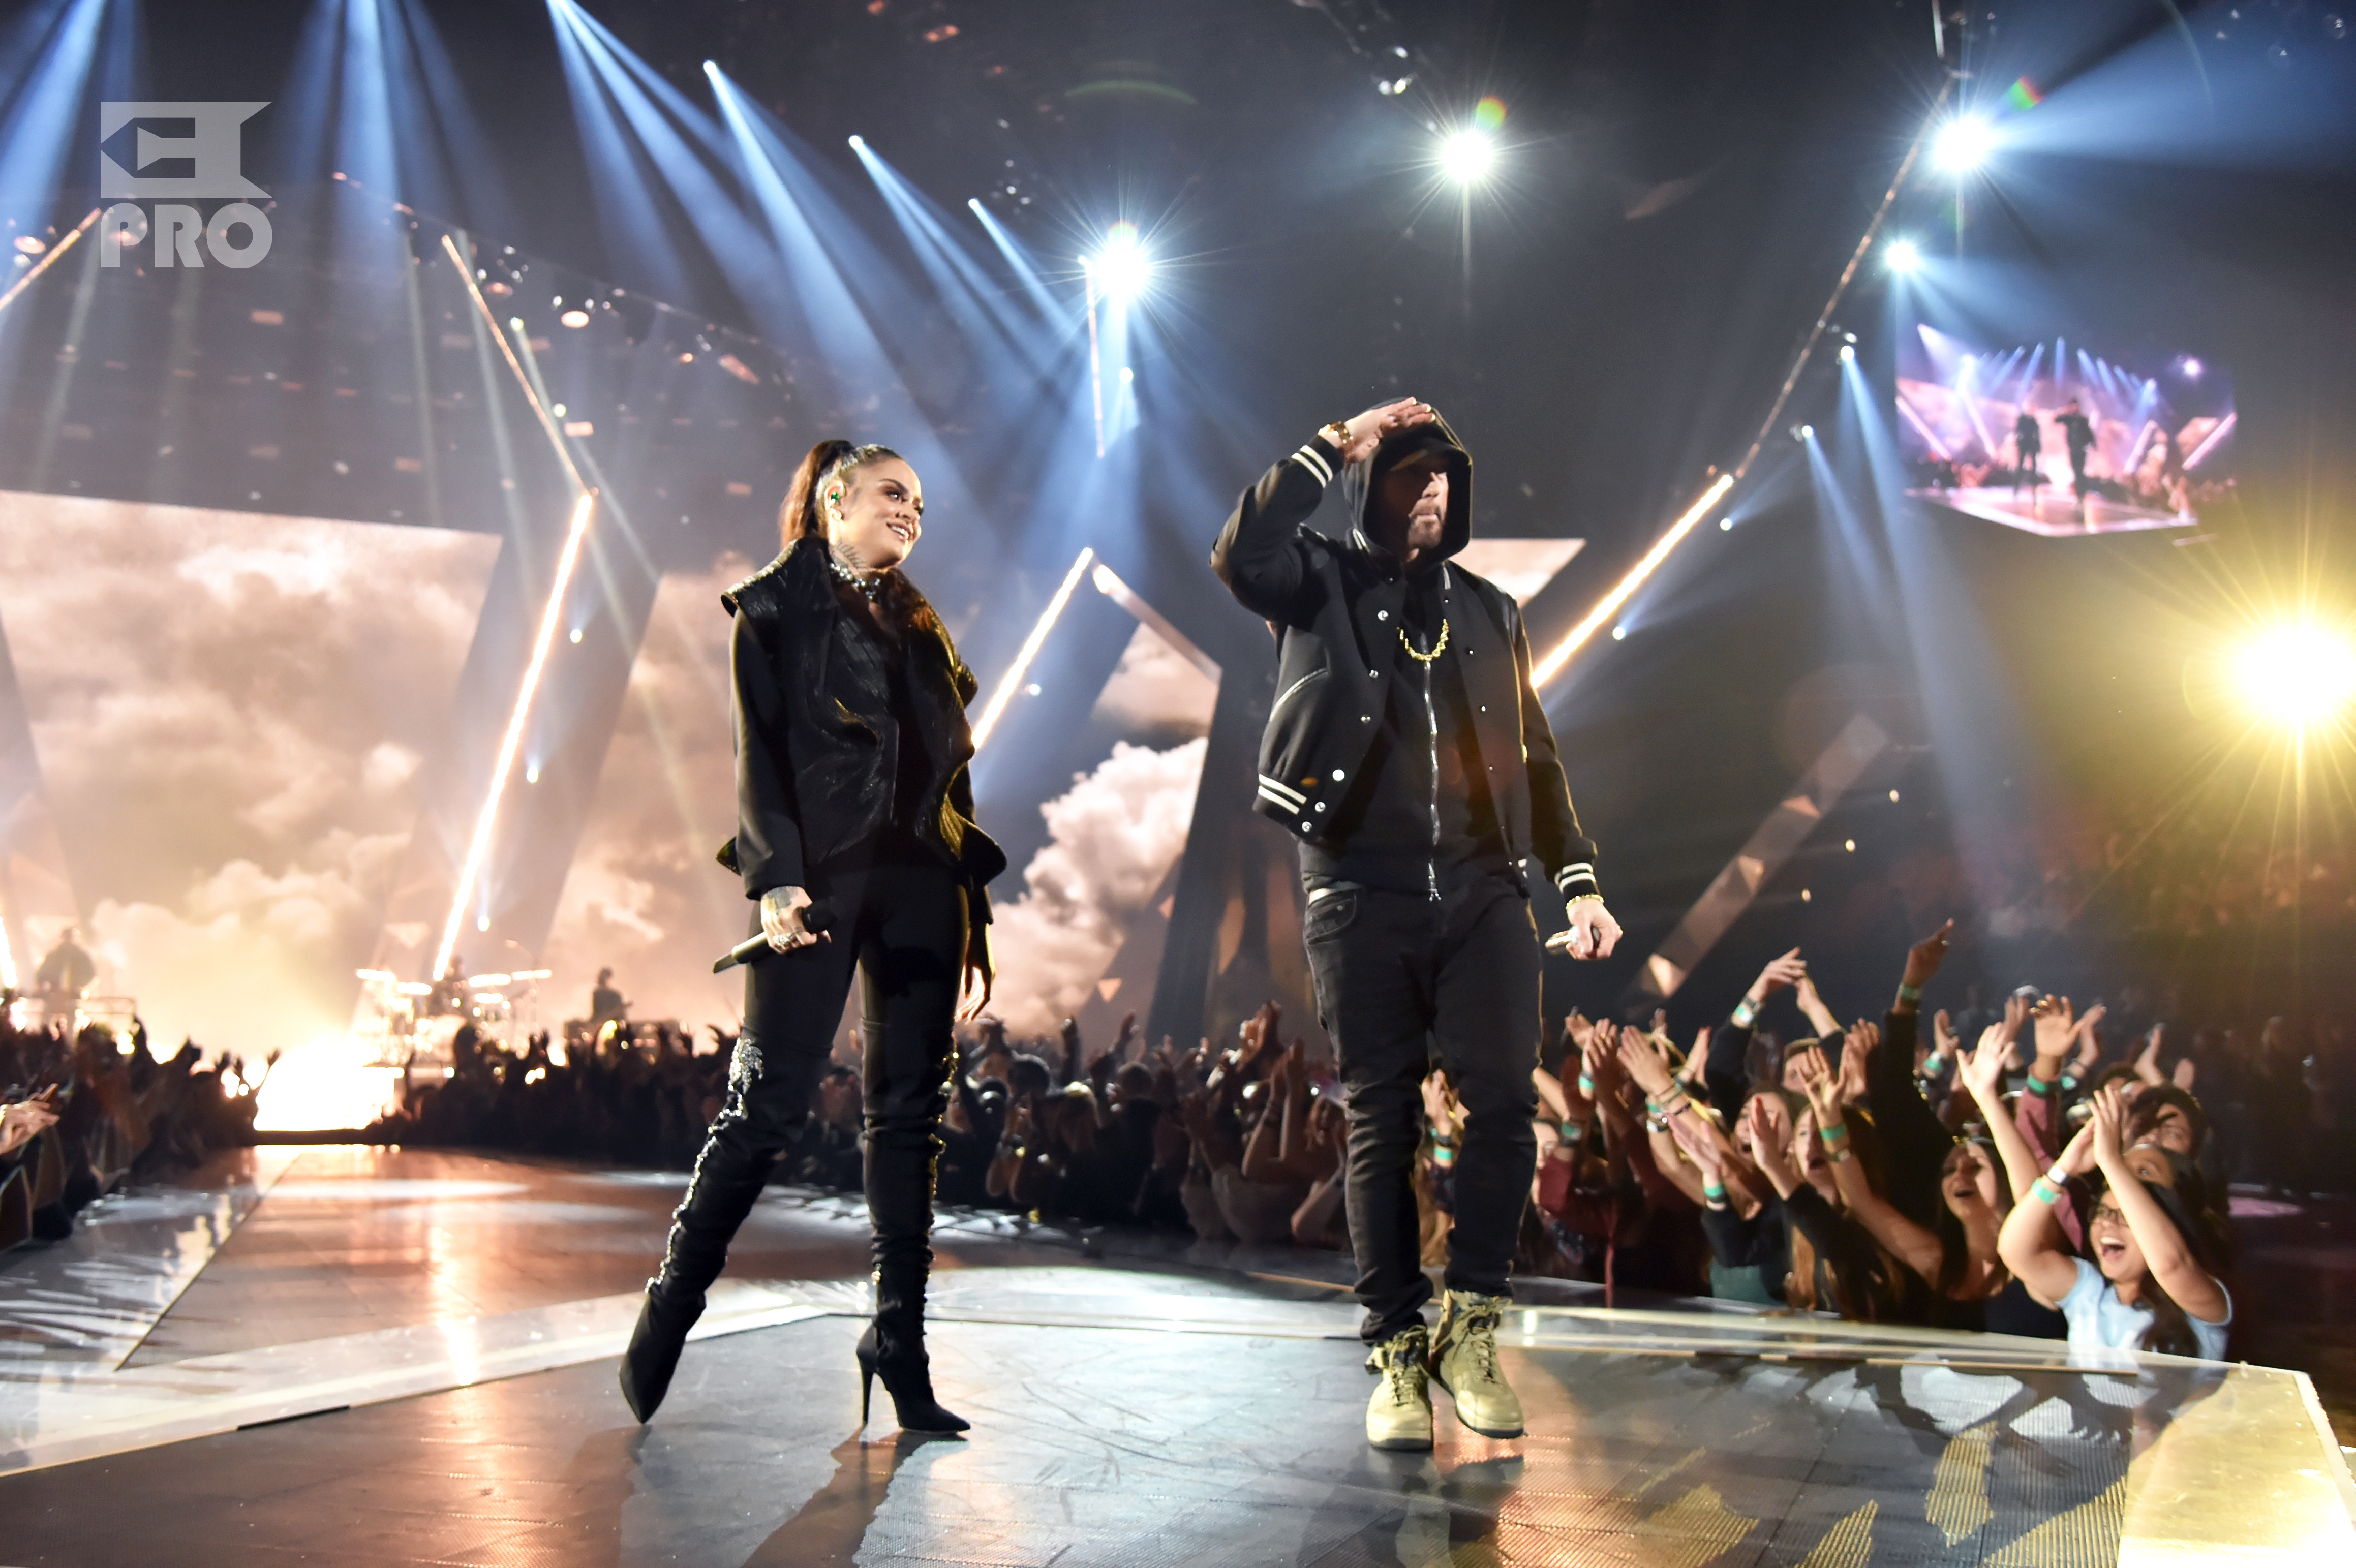 INGLEWOOD, CA - MARCH 11: Kehlani (L) and Eminem perform onstage during the 2018 iHeartRadio Music Awards which broadcasted live on TBS, TNT, and truTV at The Forum on March 11, 2018 in Inglewood, California. (Photo by Kevin Mazur/Getty Images for iHeartMedia)